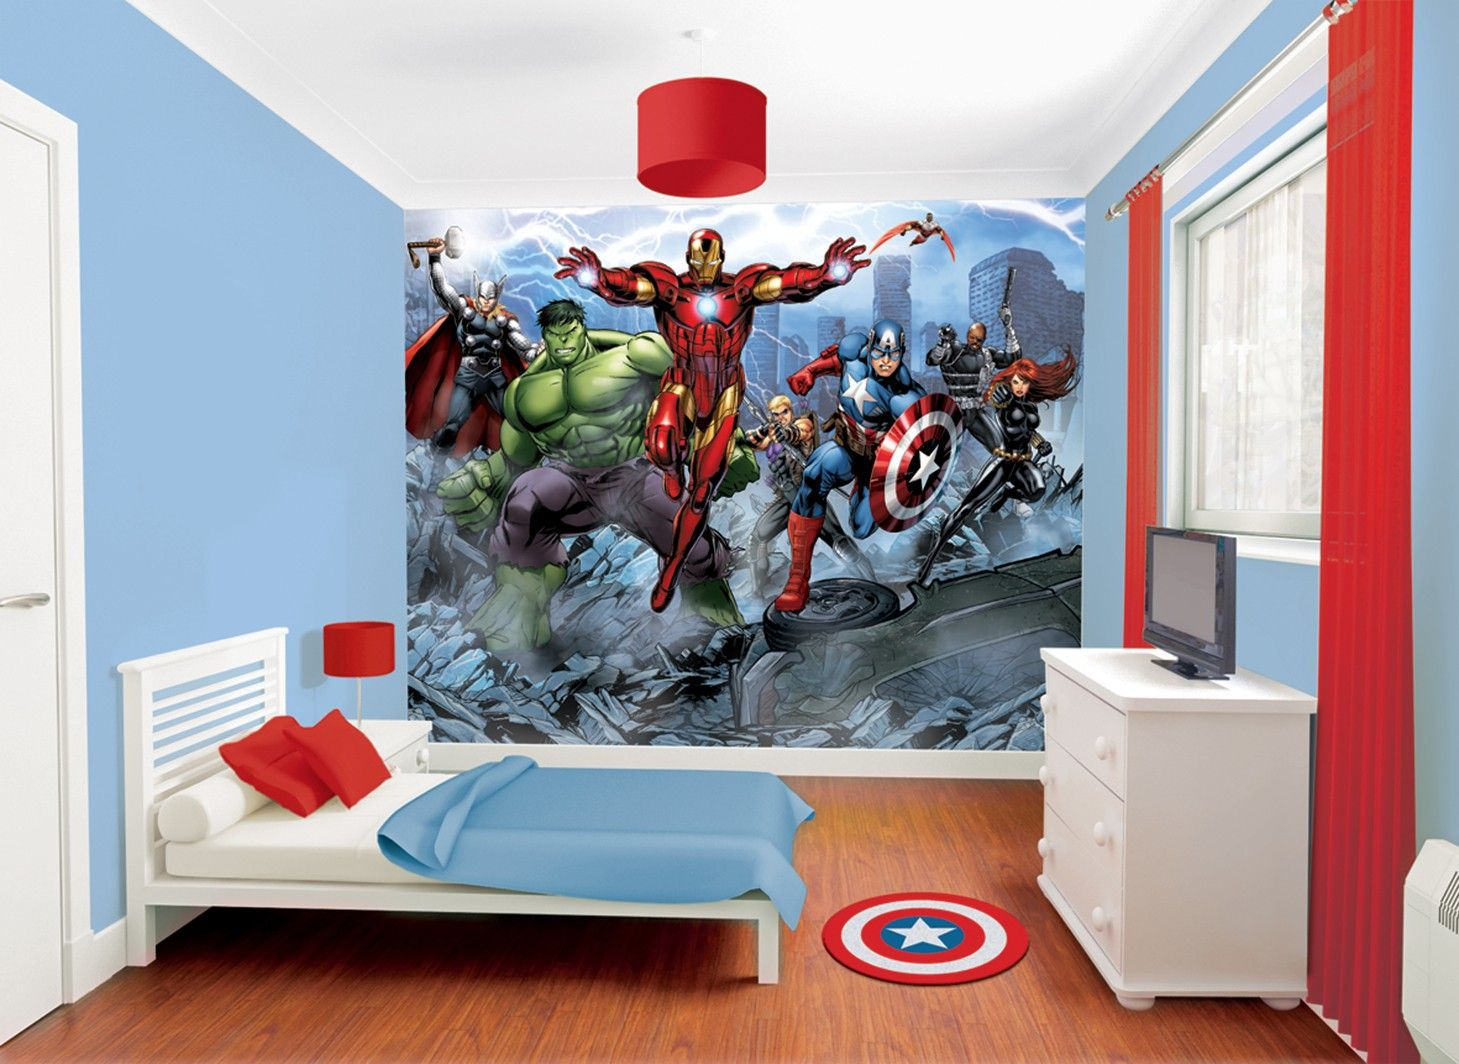 Marvel Themed Room New Marvel Avengers Wallpaper Murals.the Boys Need This For Their Inspiration